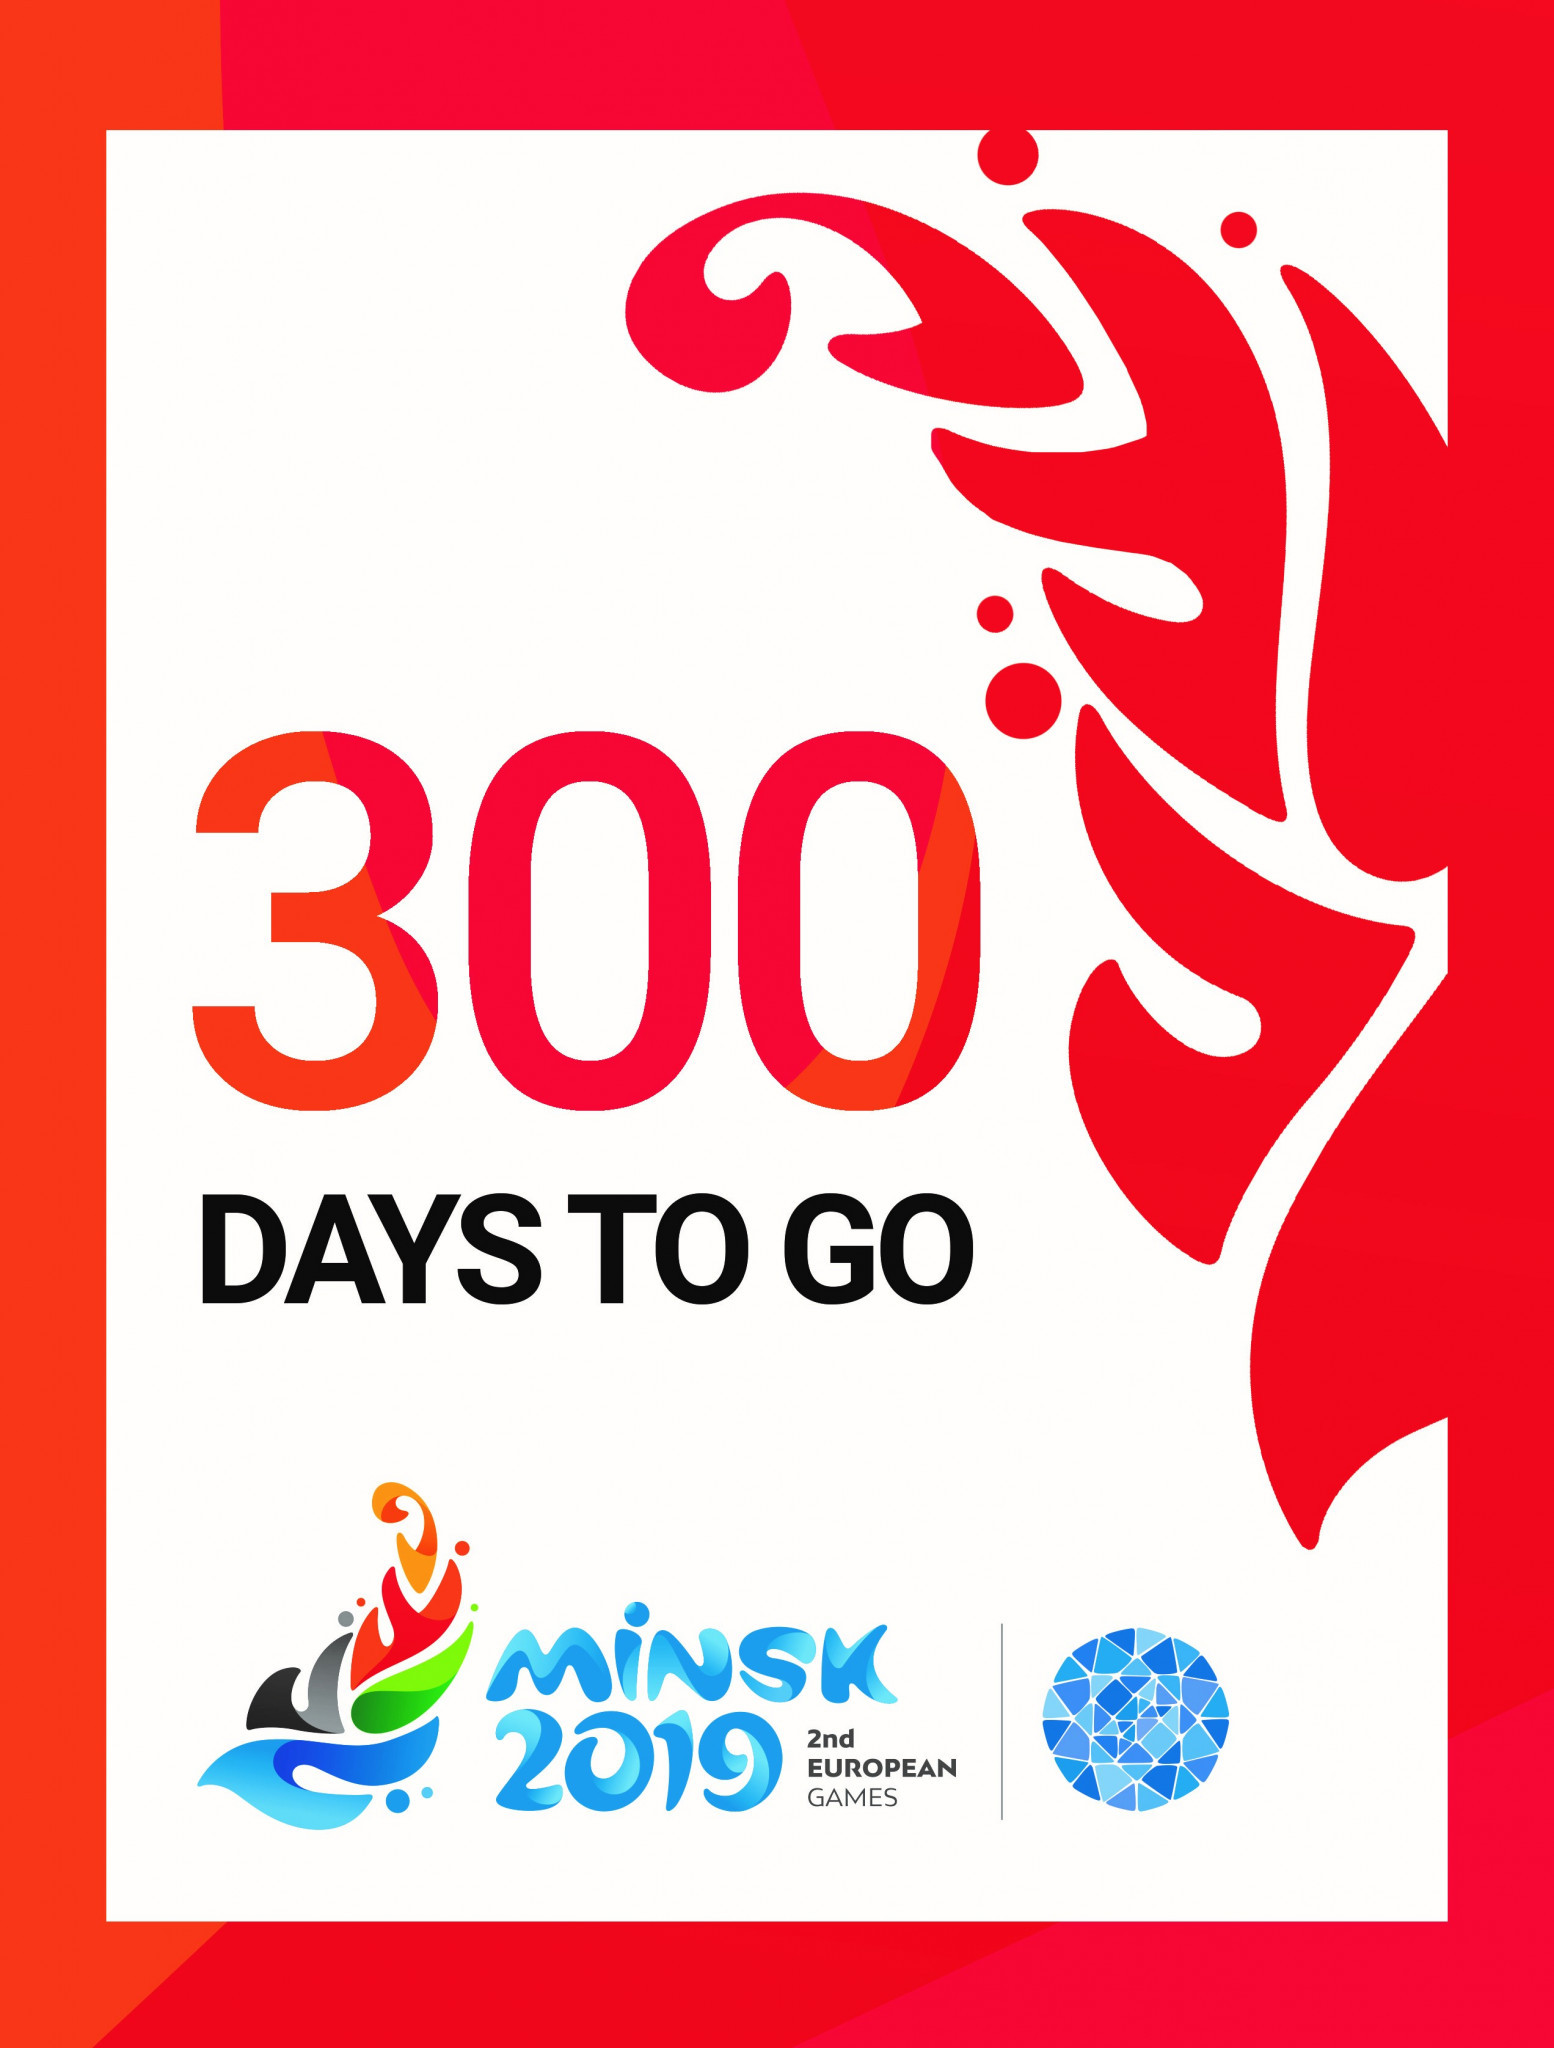 "Clegg expresses ""full confidence"" in Minsk 2019 as city marks 300 days countdown"